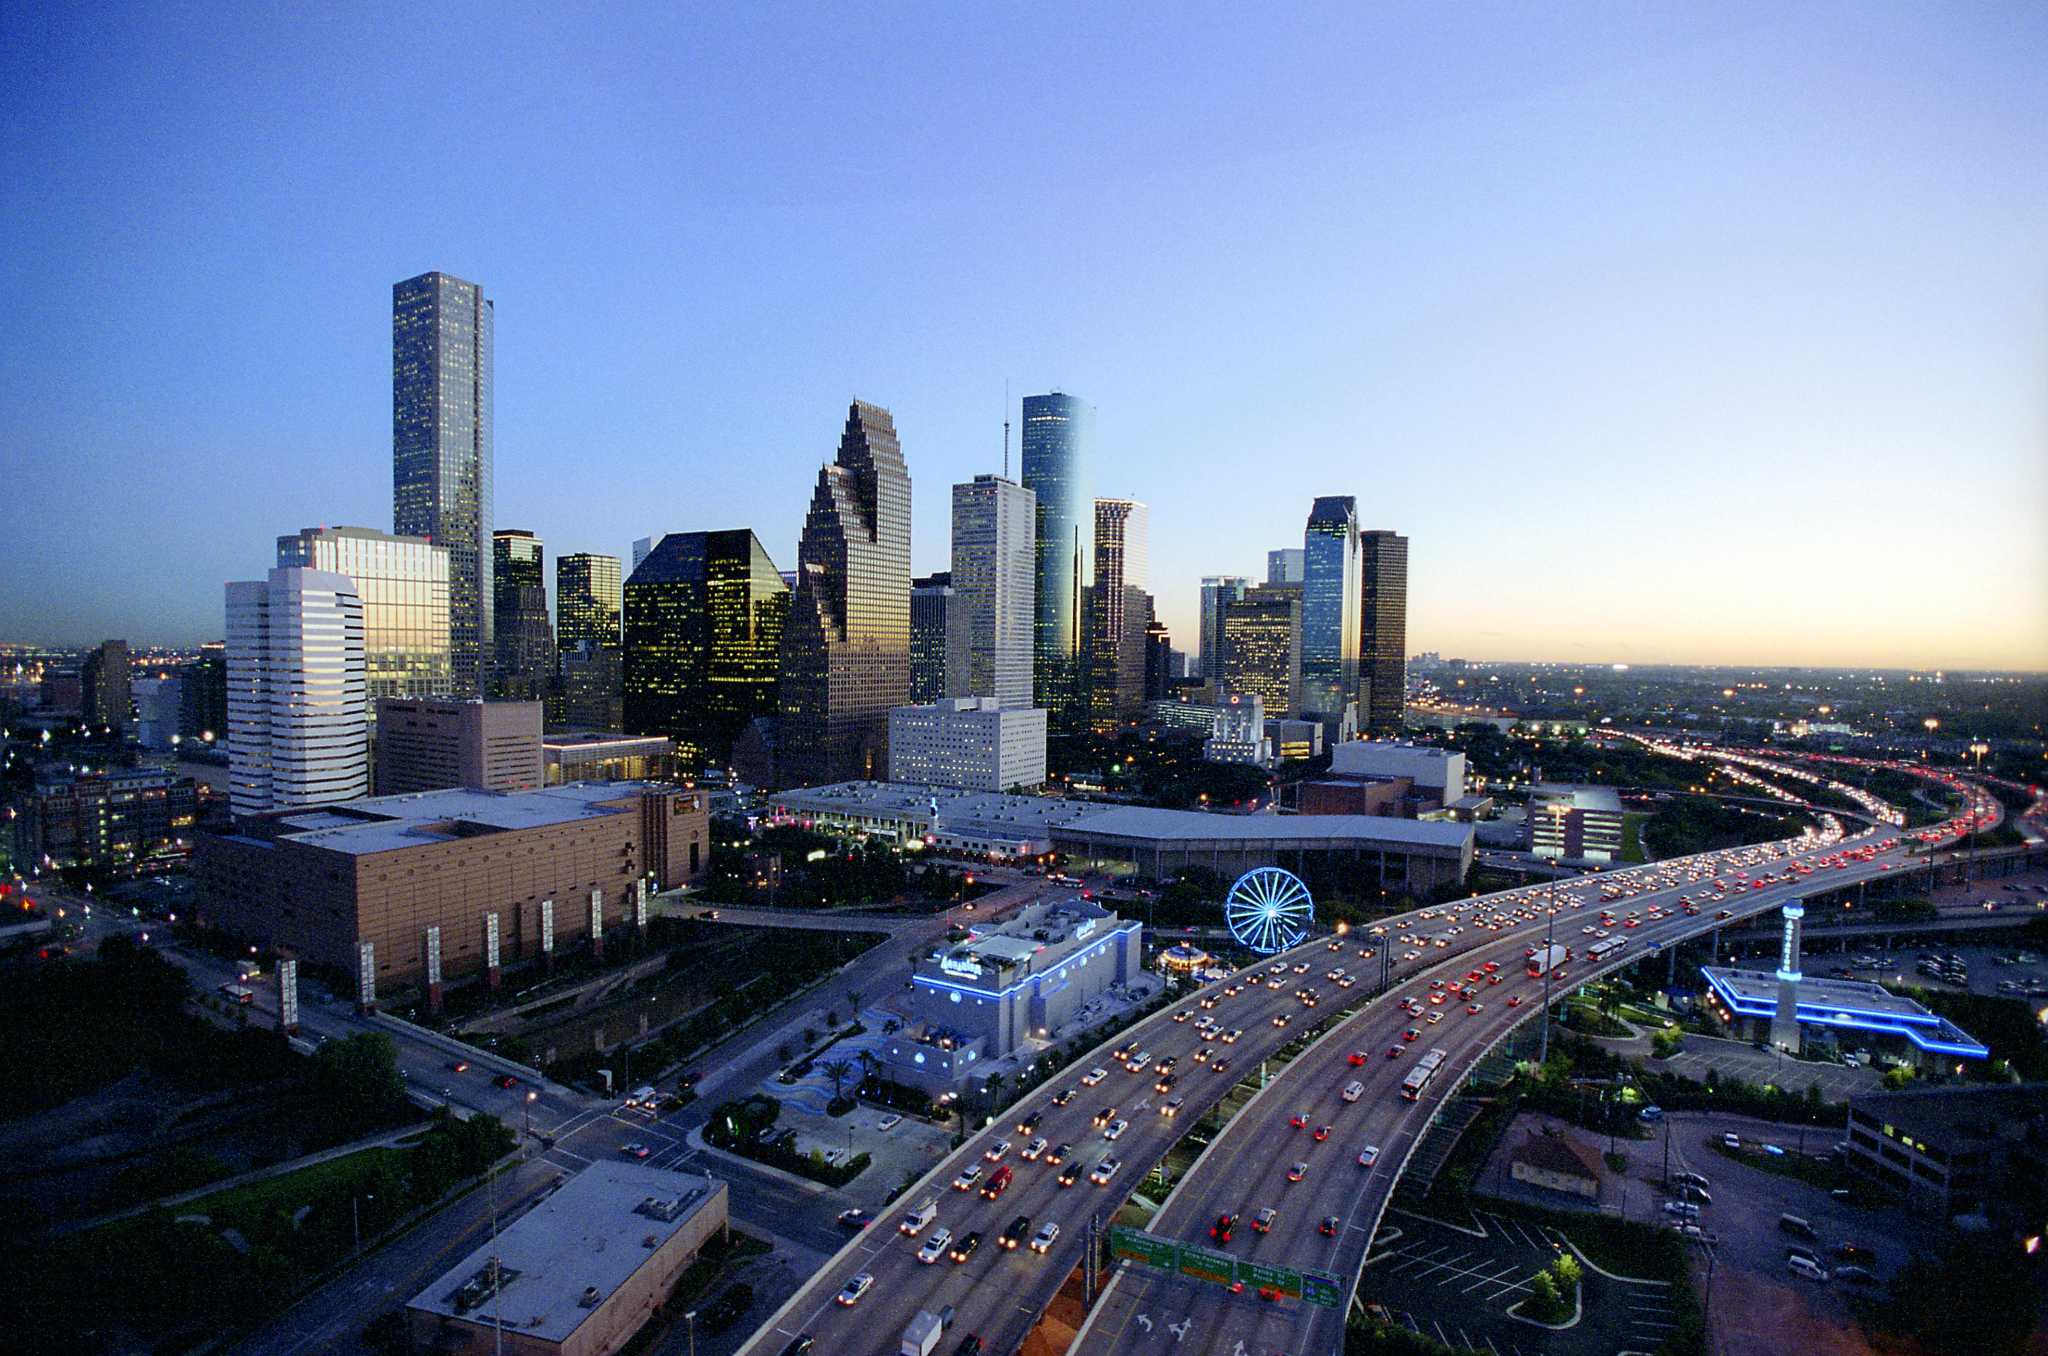 UH used a Houston photographer's skyline shot for 3 years without credit - but it wasn't stolen